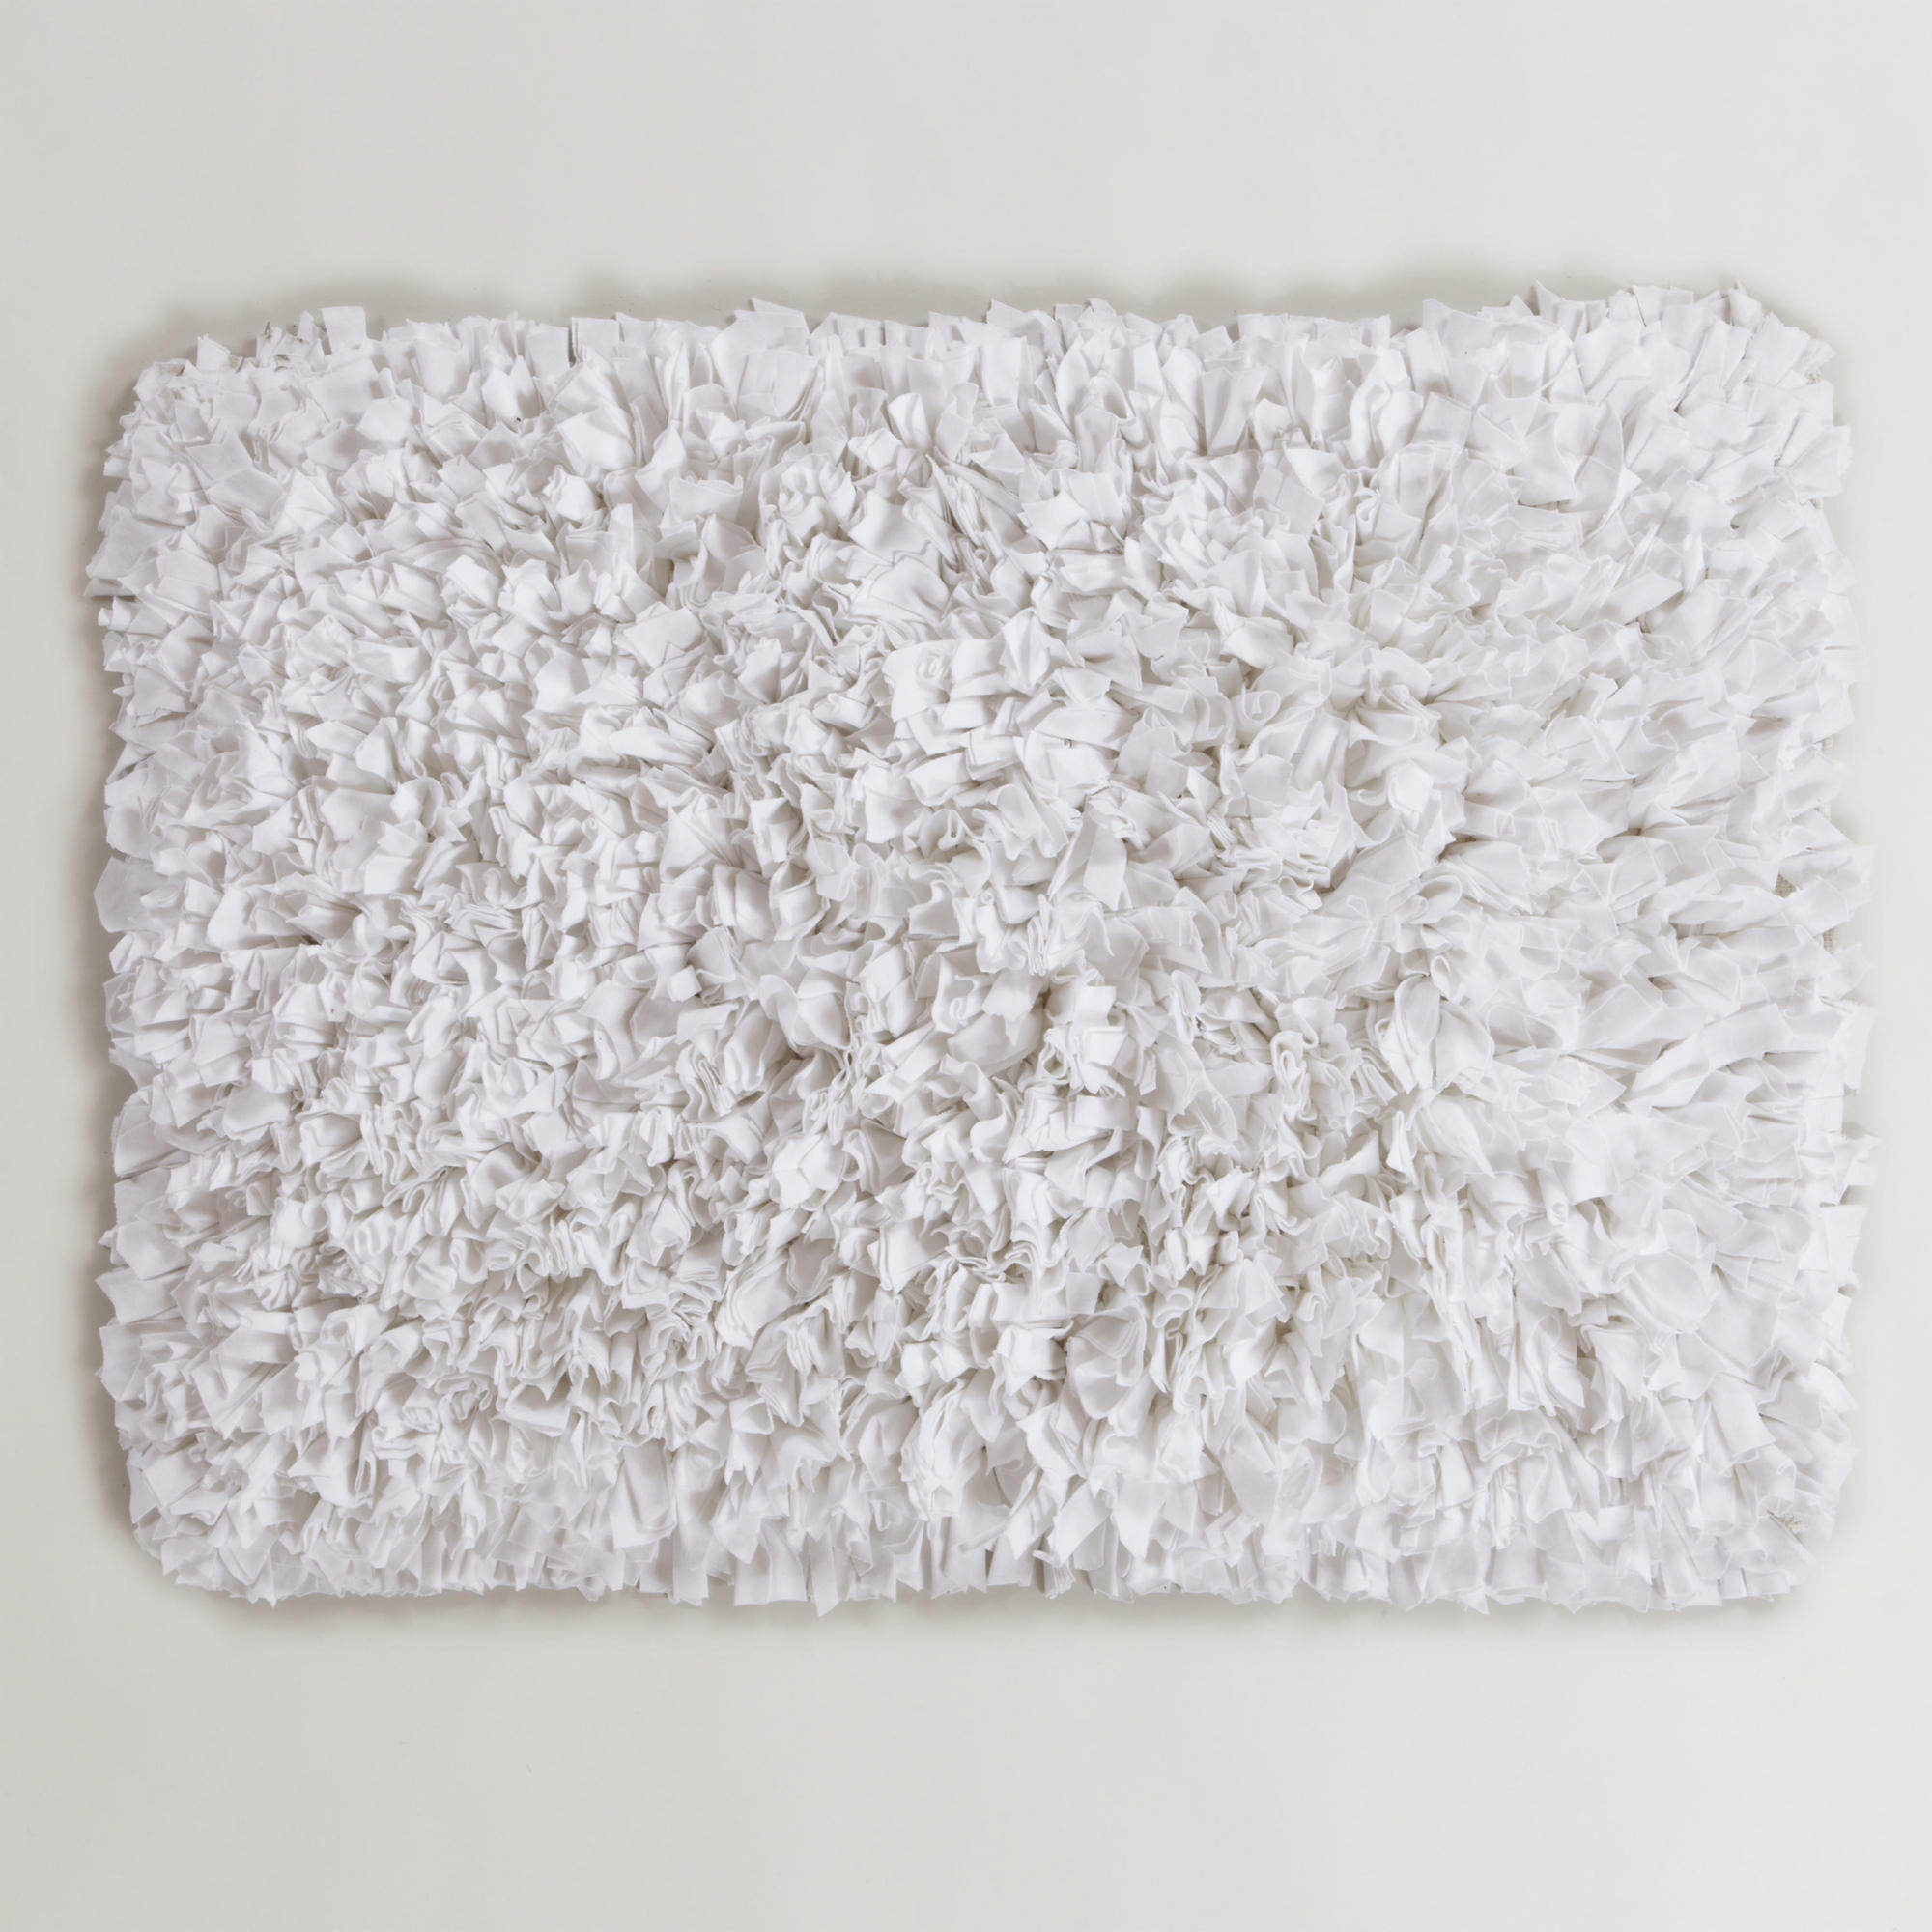 Small Bath Mats And Rugs